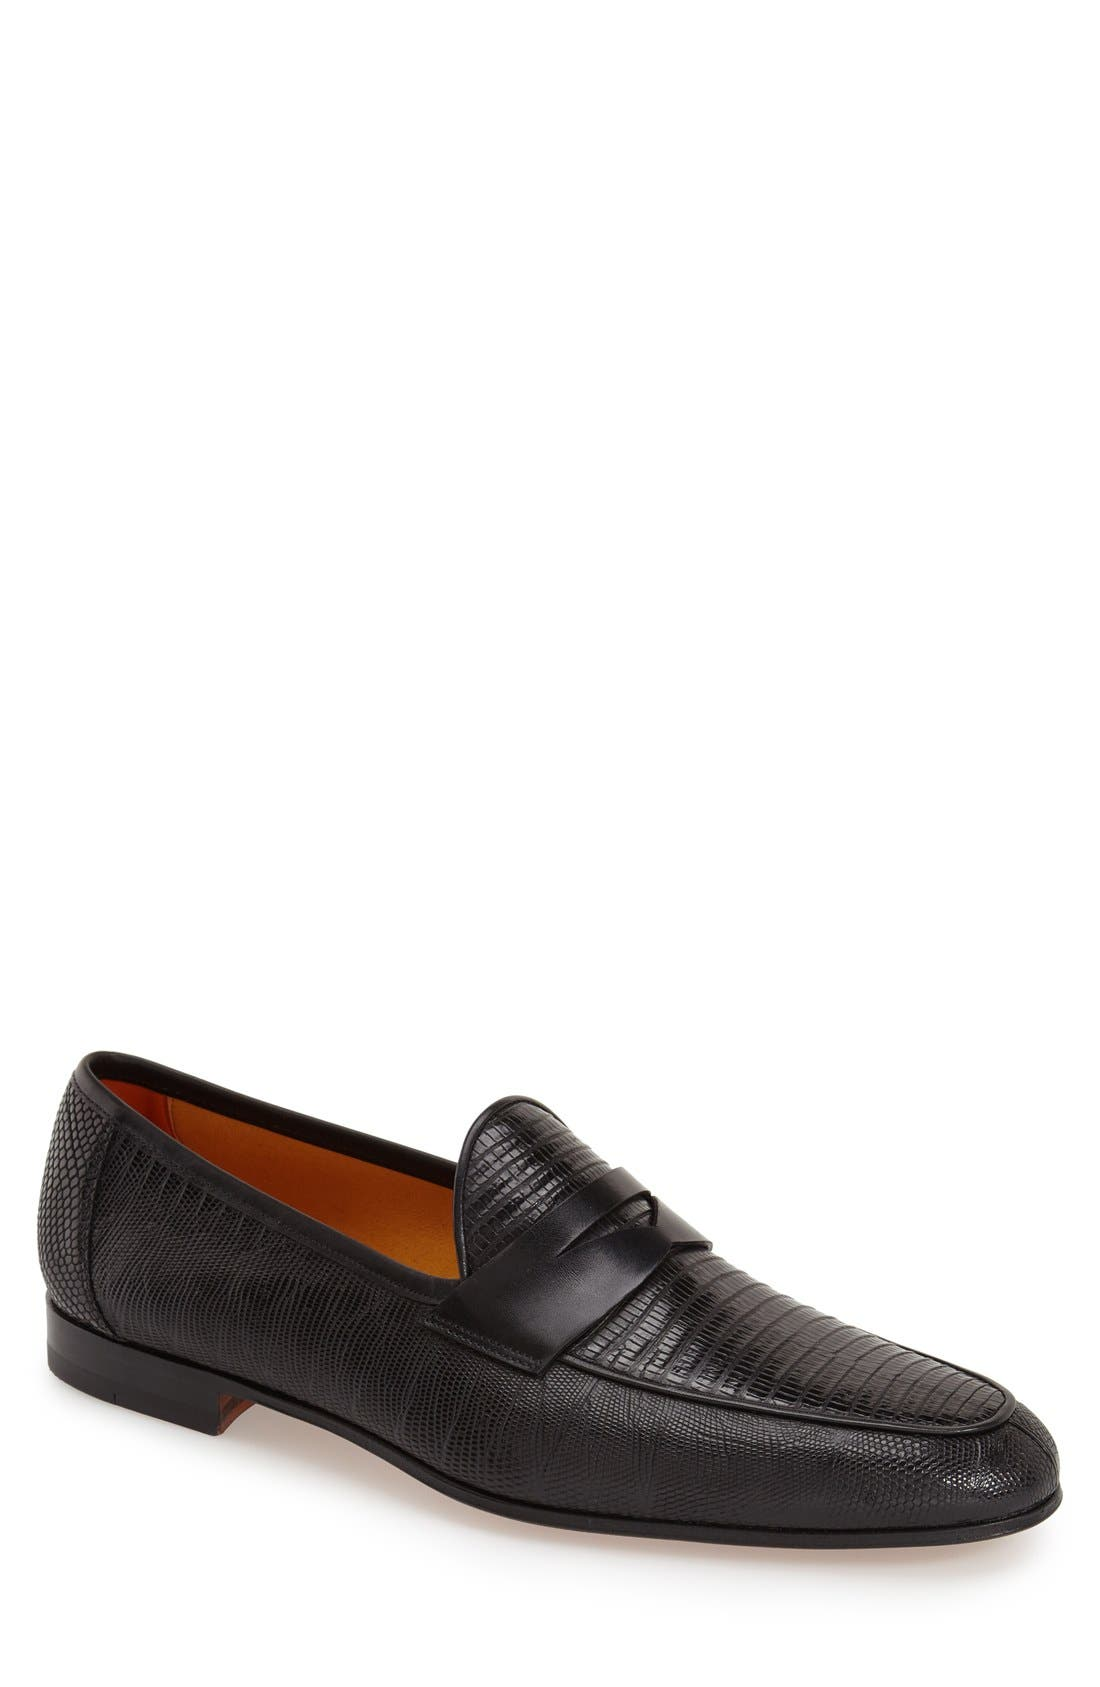 'Camerino' Lizard Penny Loafer,                             Main thumbnail 1, color,                             001